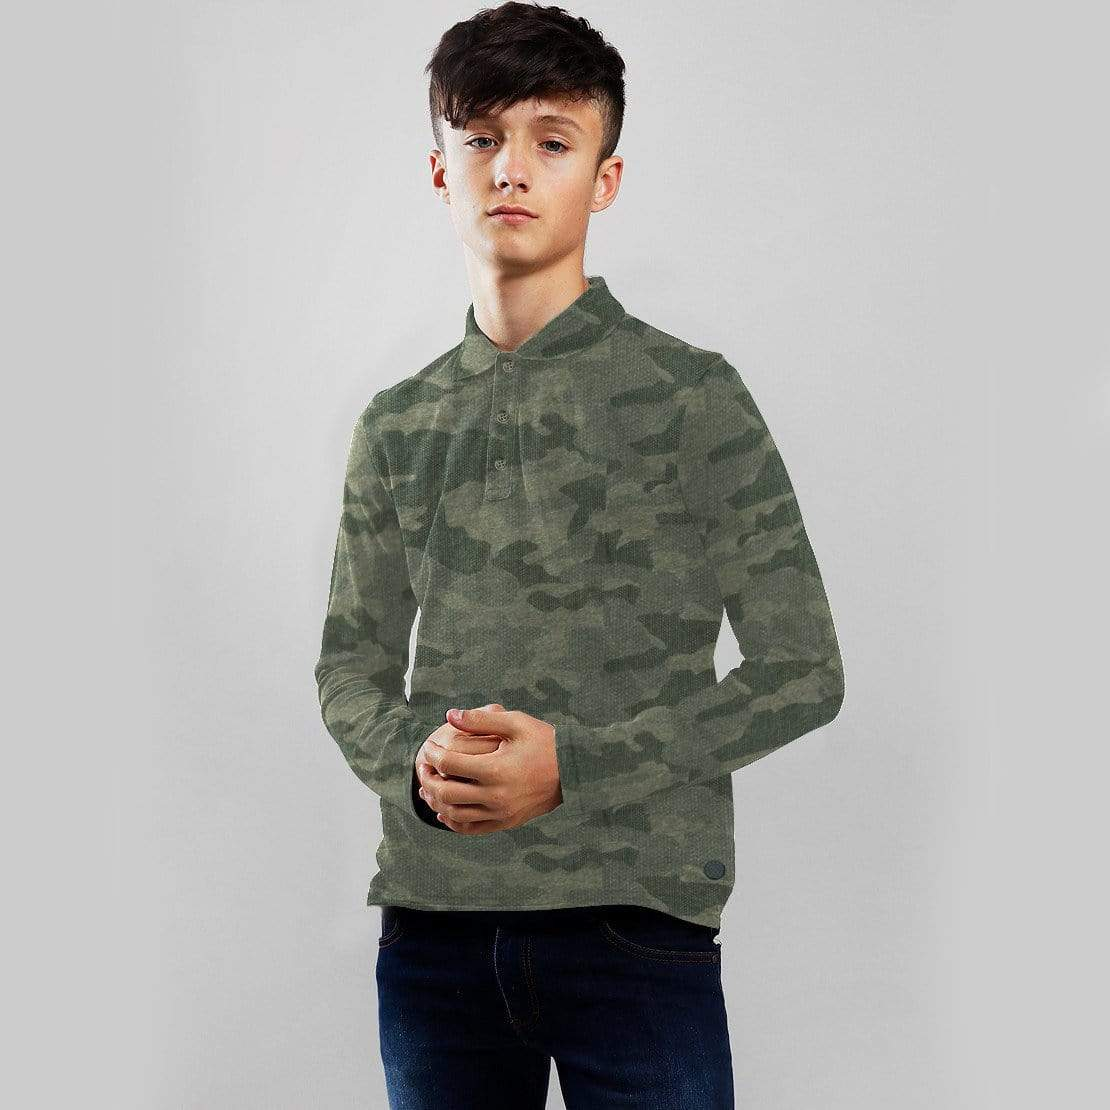 Henry James Kid's T-Shirt Dark Camo / 6-7 Years Boy's Henry James CAMOUFLAGE Long Sleeve Polo Shirt